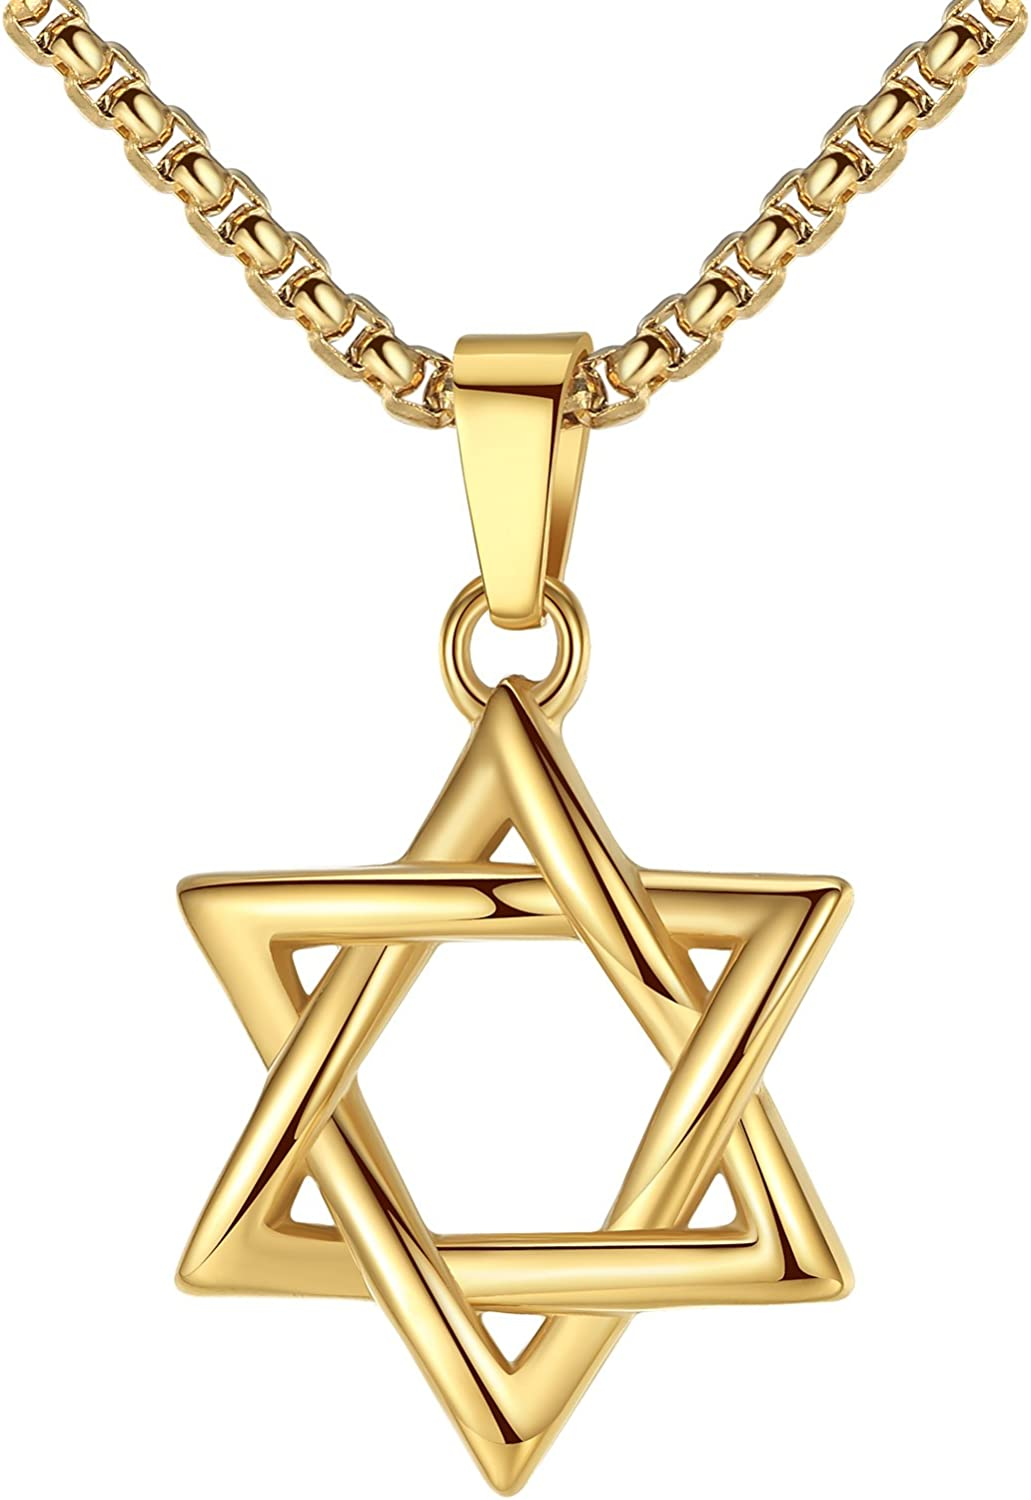 LineAve Stainless Steel Jewish Star of David Pendant Necklace, Unisex, 8h0047